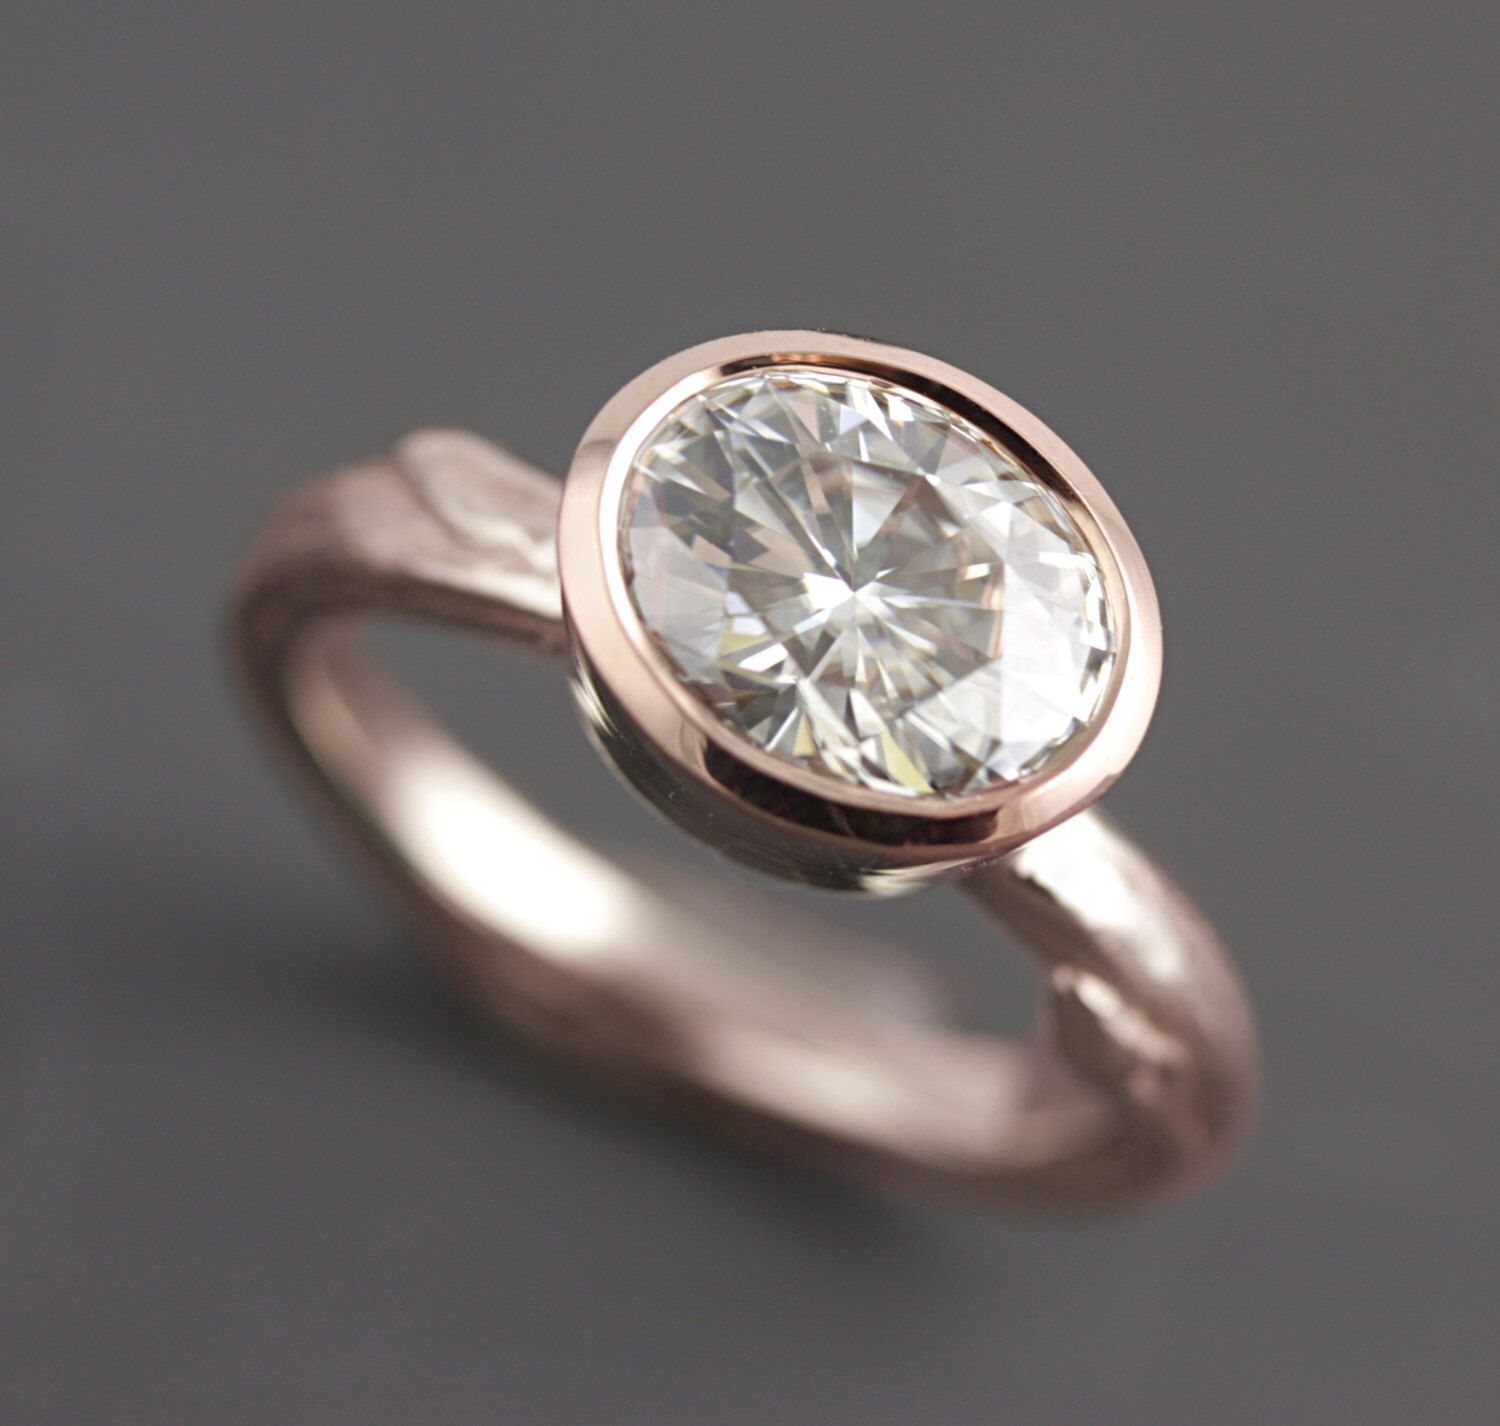 Rose Gold Engagement Ring Modern Twig Branch Diamond Alternative Oval Moissanite Made To Order By